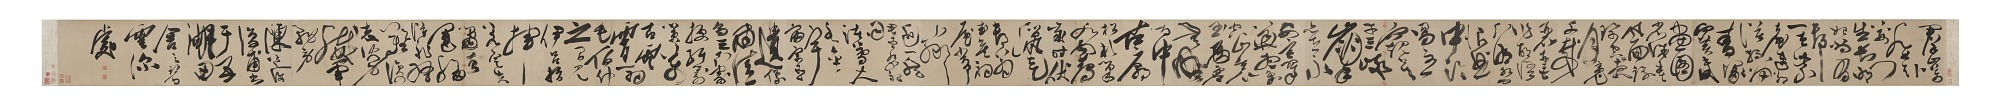 : Three poems by Du Fu in wild-cursive script